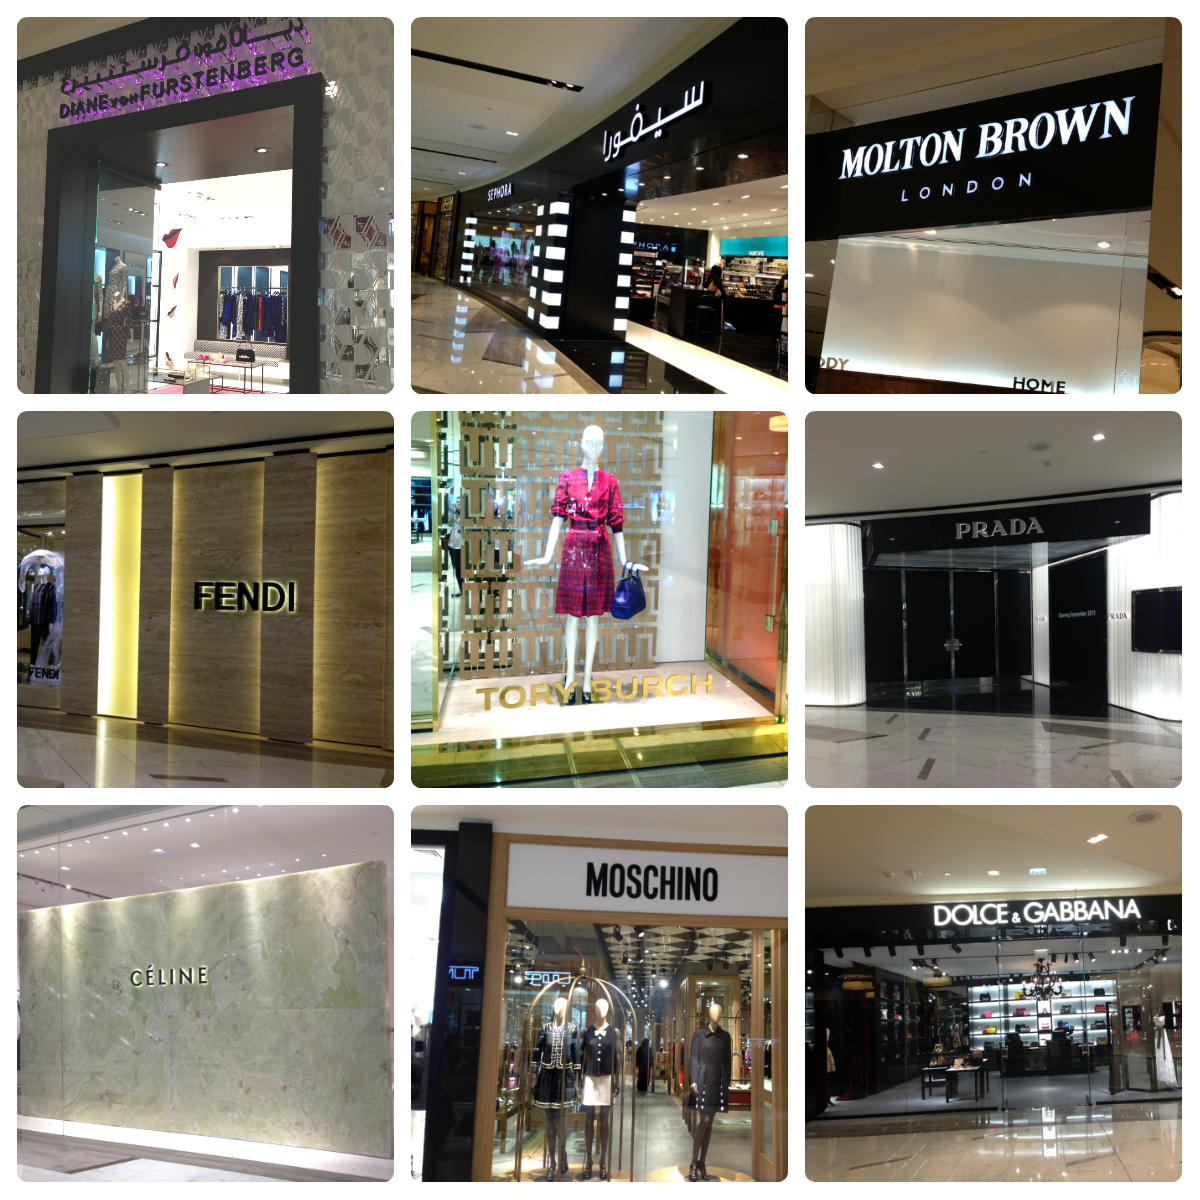 d47f9be09f49 My Small Obsessions  Galleria Mall in Abu Dhabi